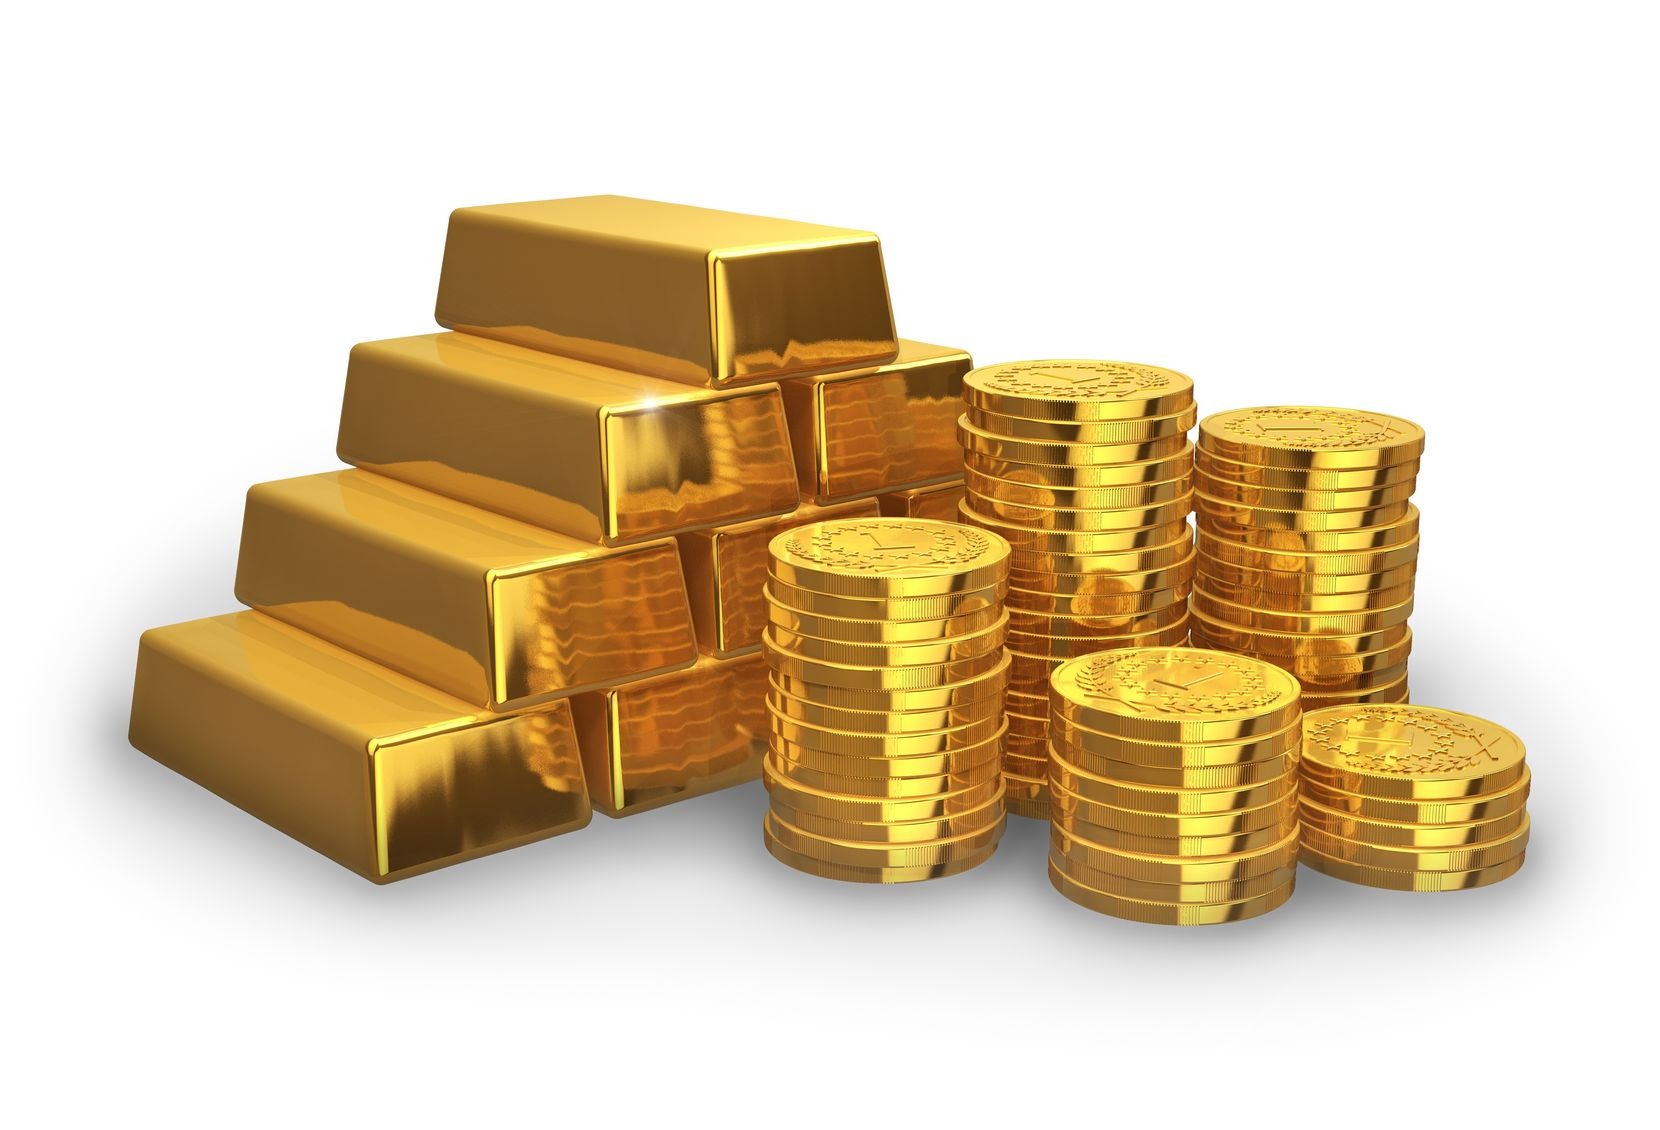 What Is the Cheapest Way To Buy Gold (Without Getting Bamboozled)?